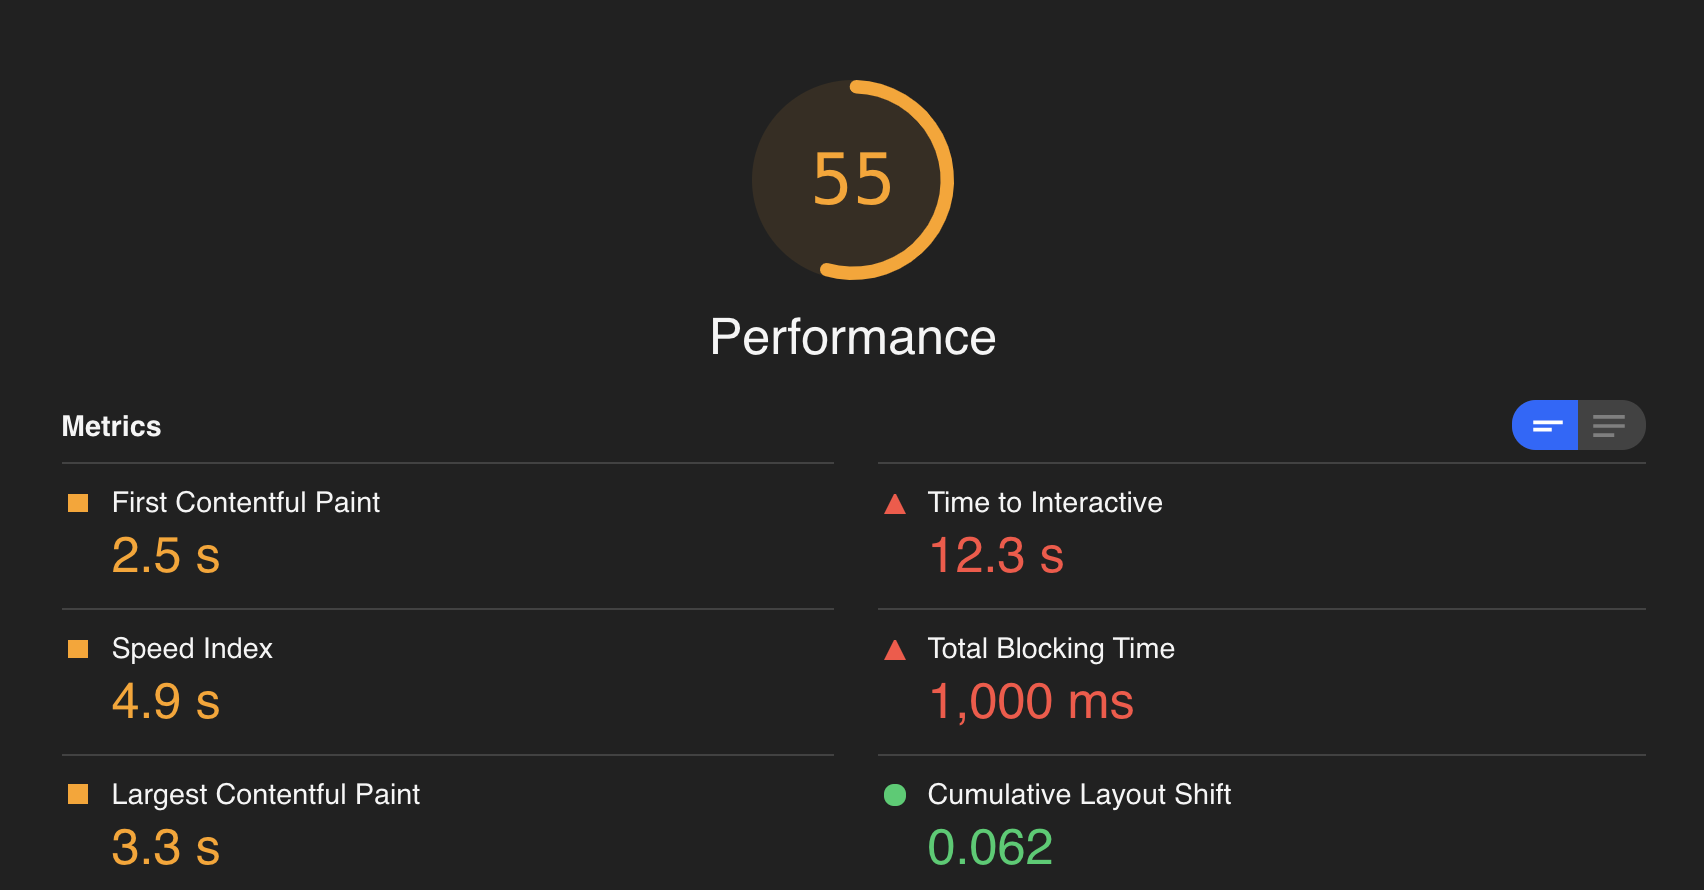 Lighthouse web page performance metrics including First Contentful Paint